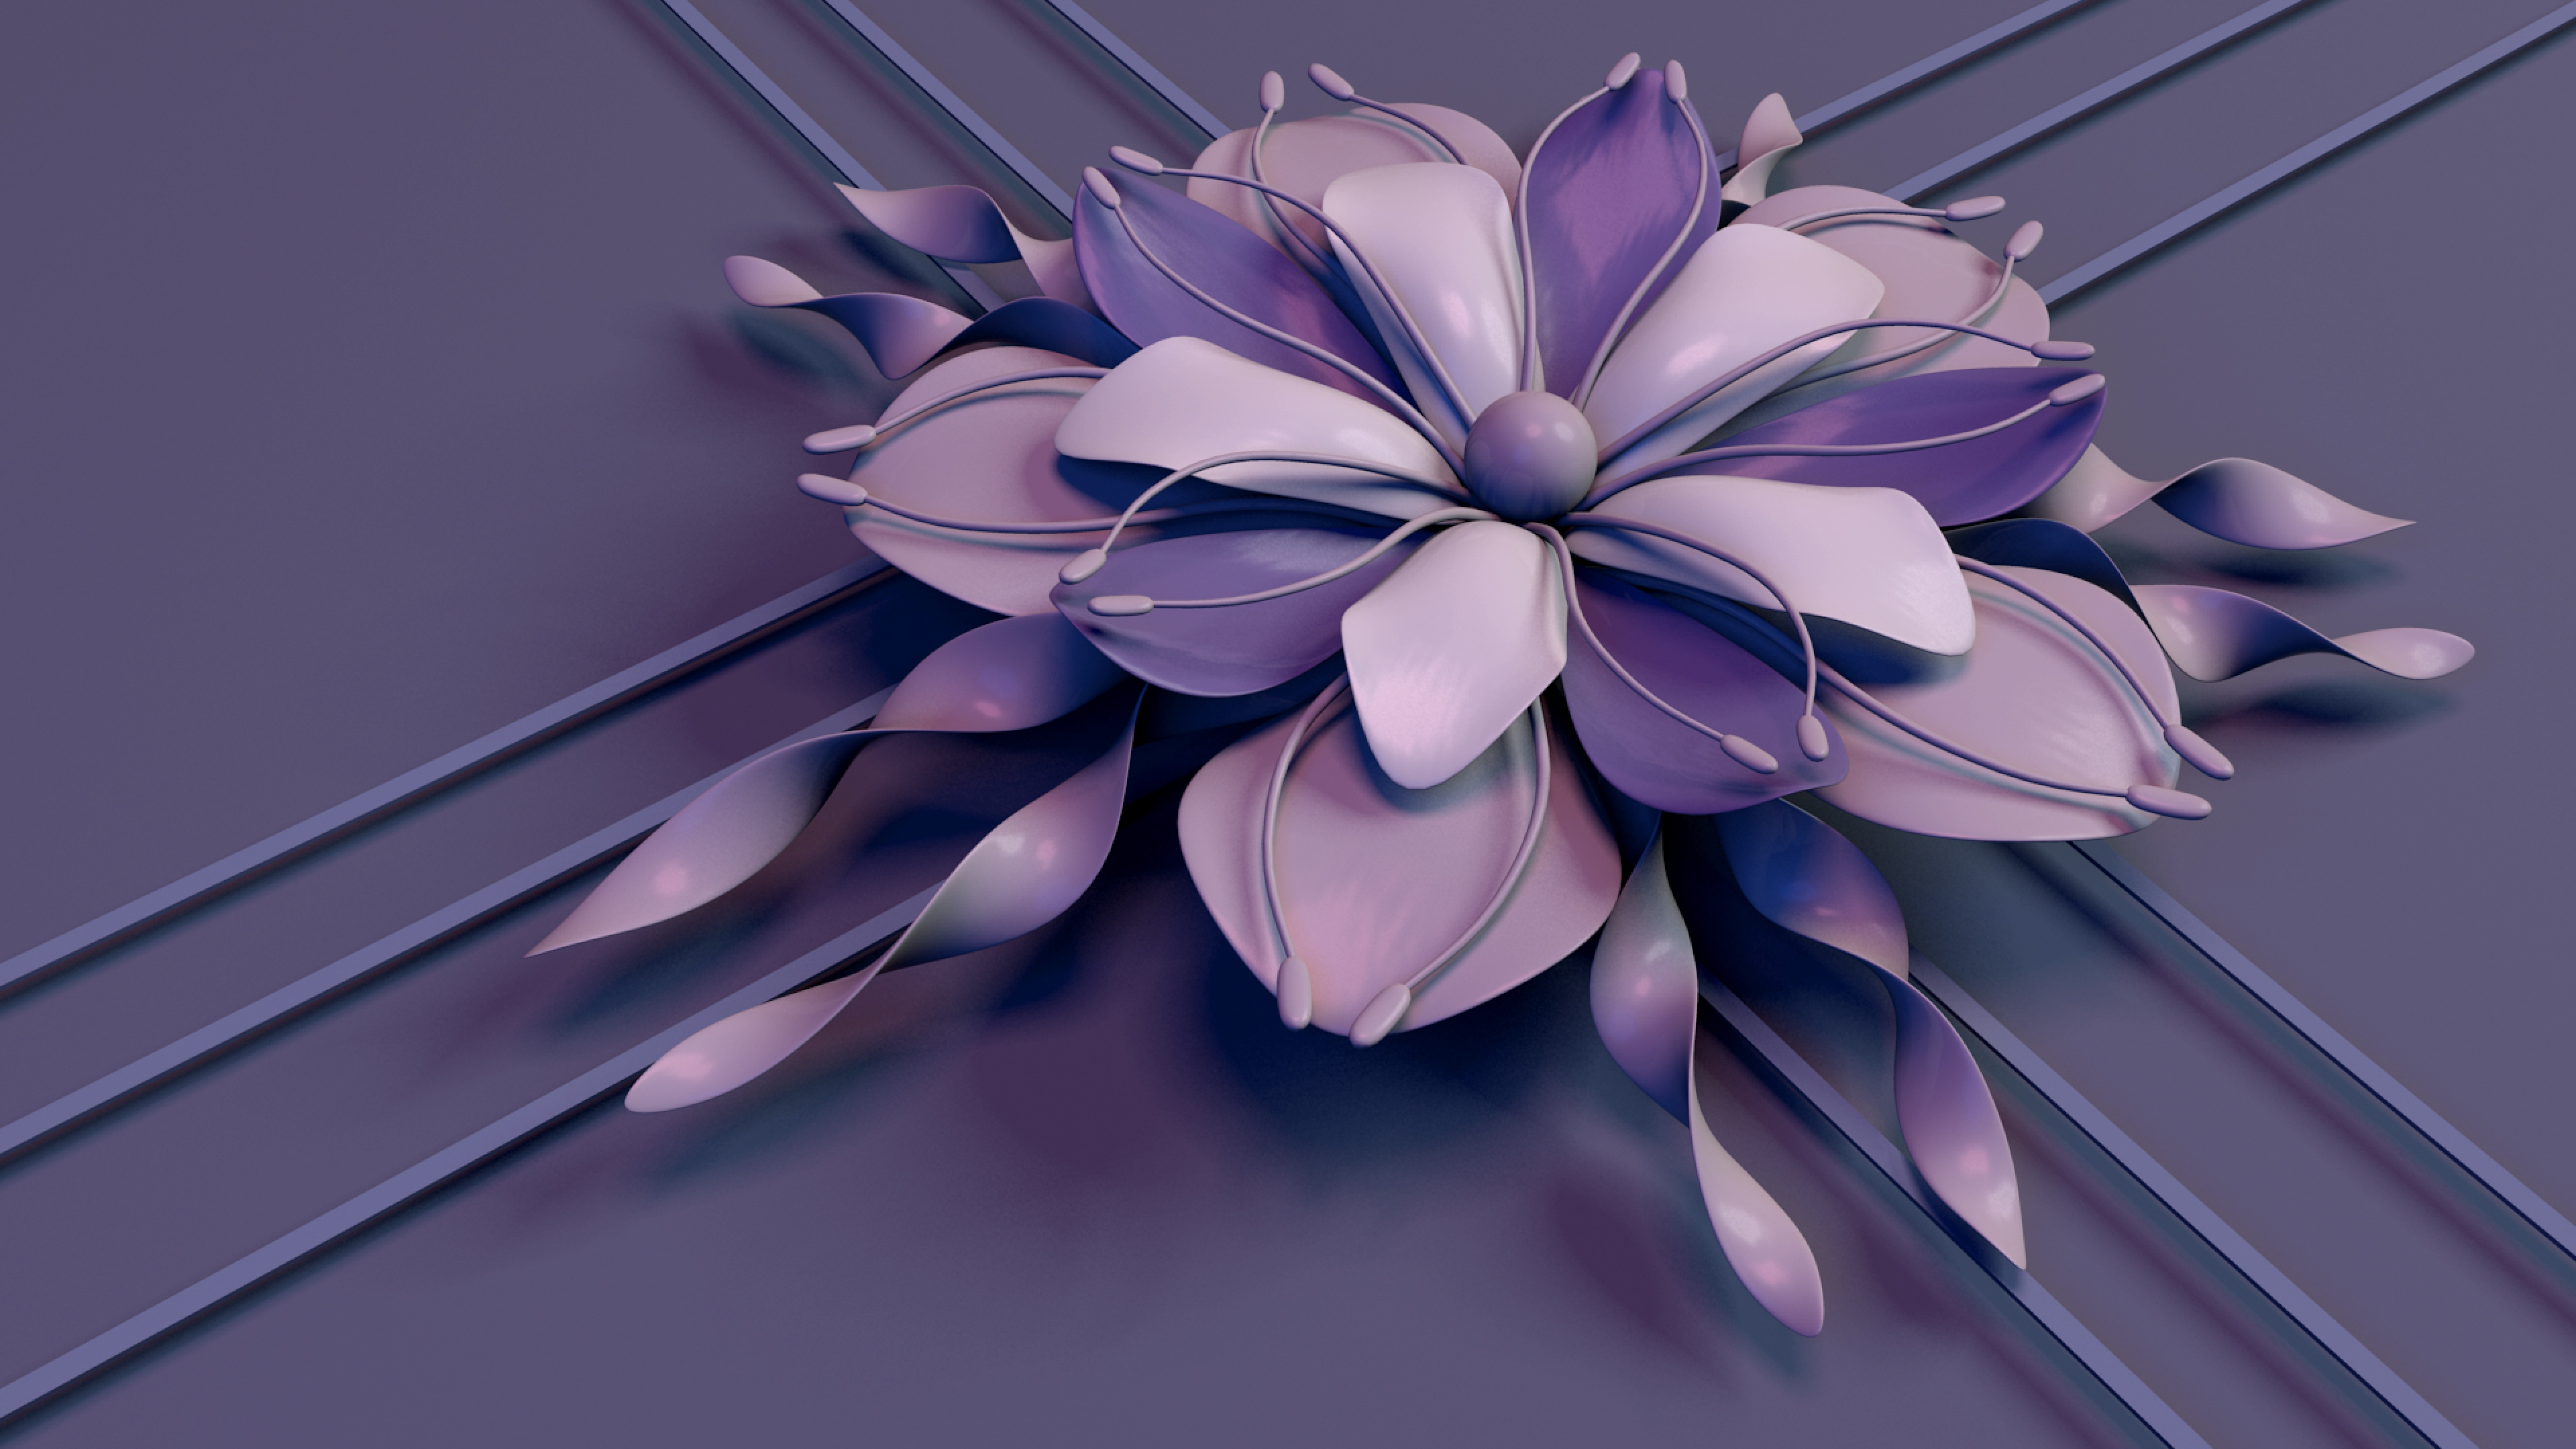 petals abstract 1539370726 - Petals Abstract - petals wallpapers, abstract wallpapers